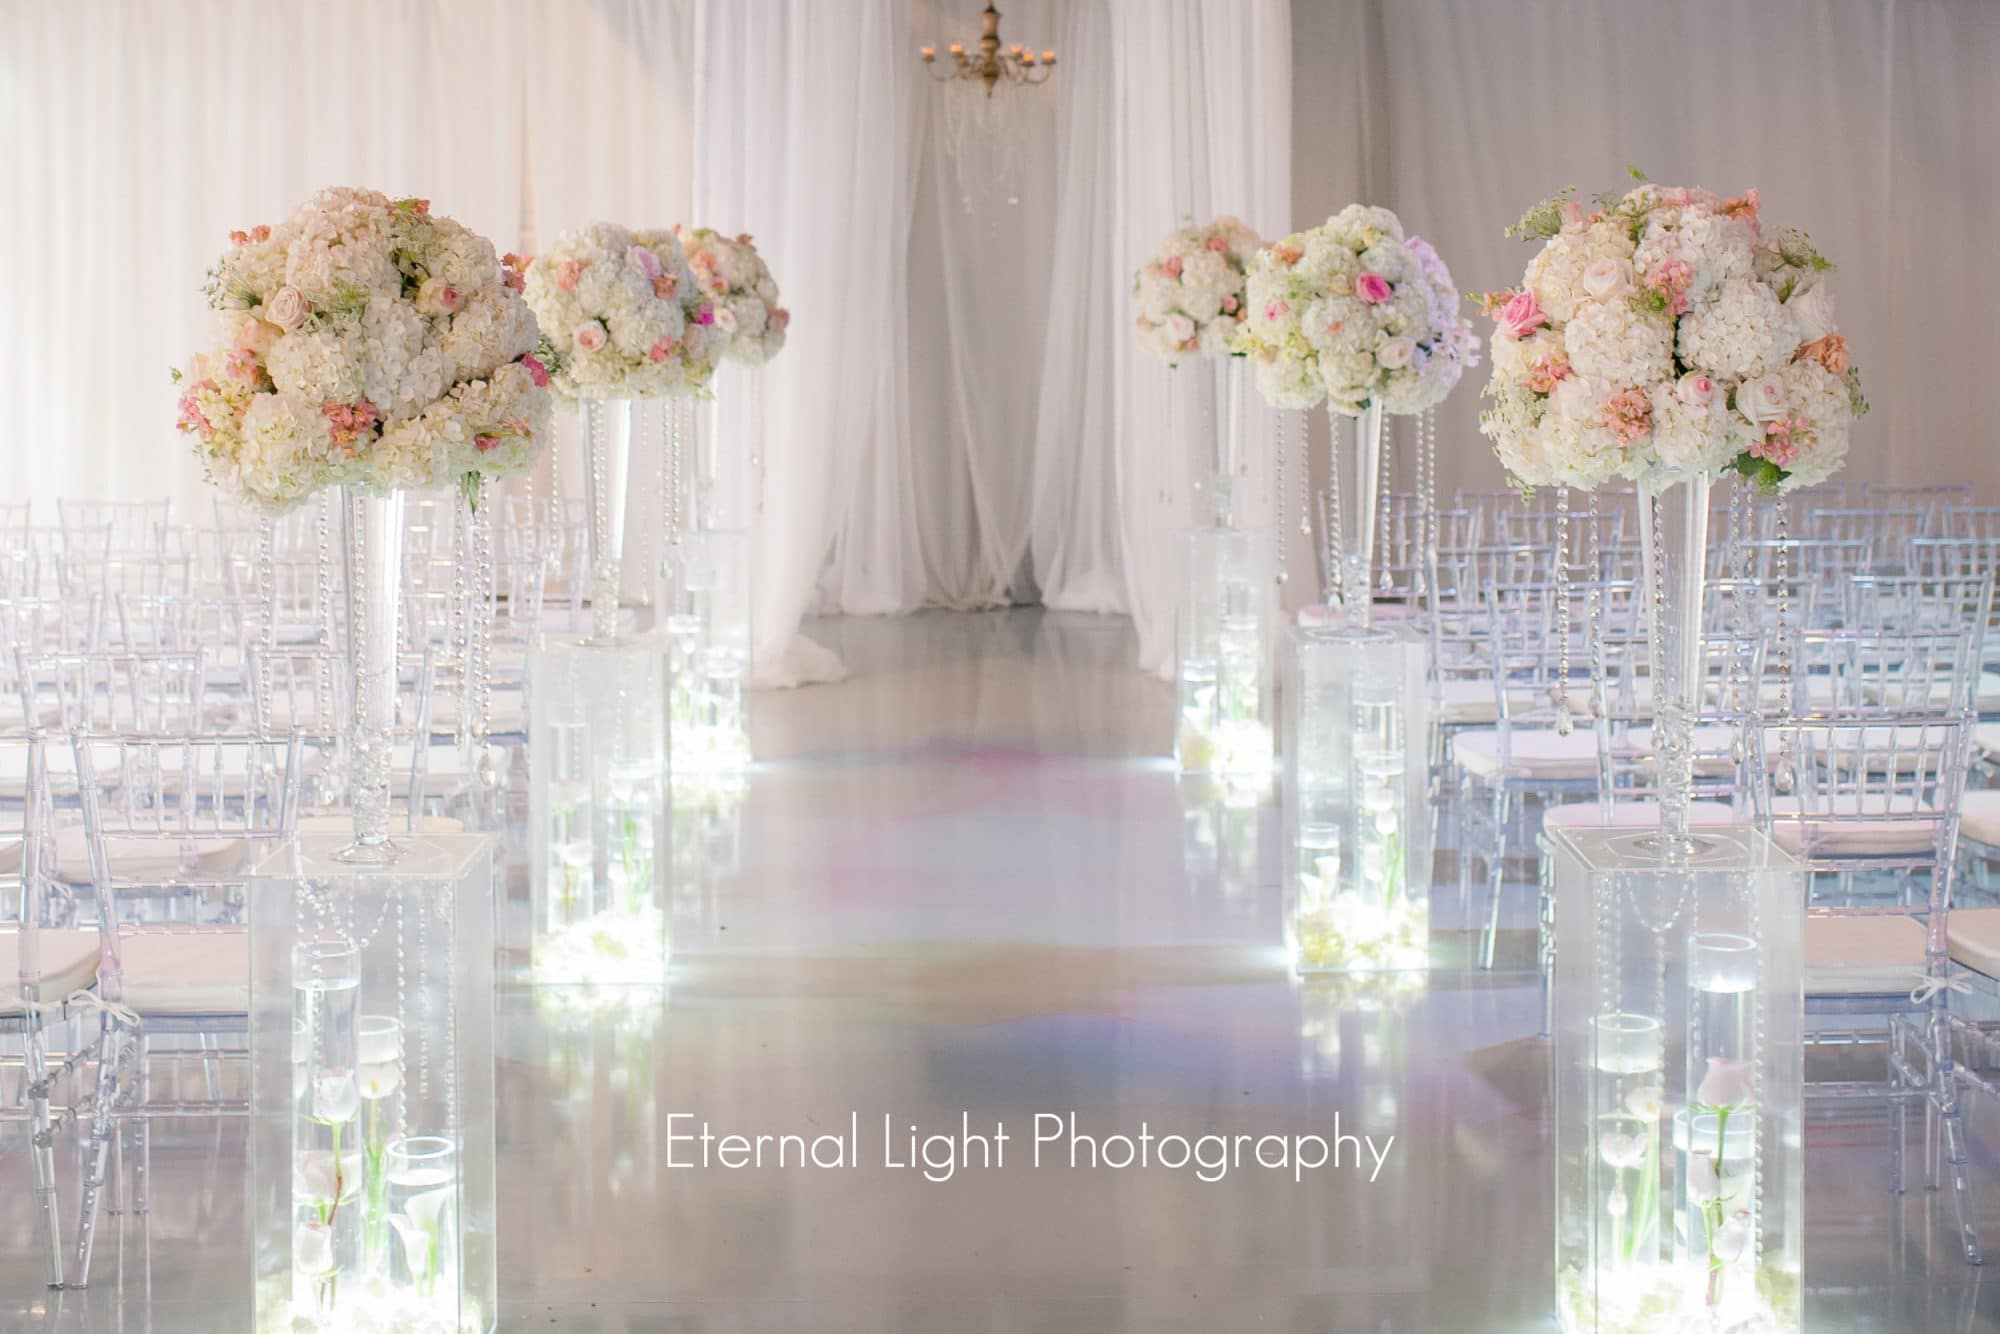 Atmospheres Floral and Decor - transparent ceremony chairs and towering aisle decorations with pink hydrangeas